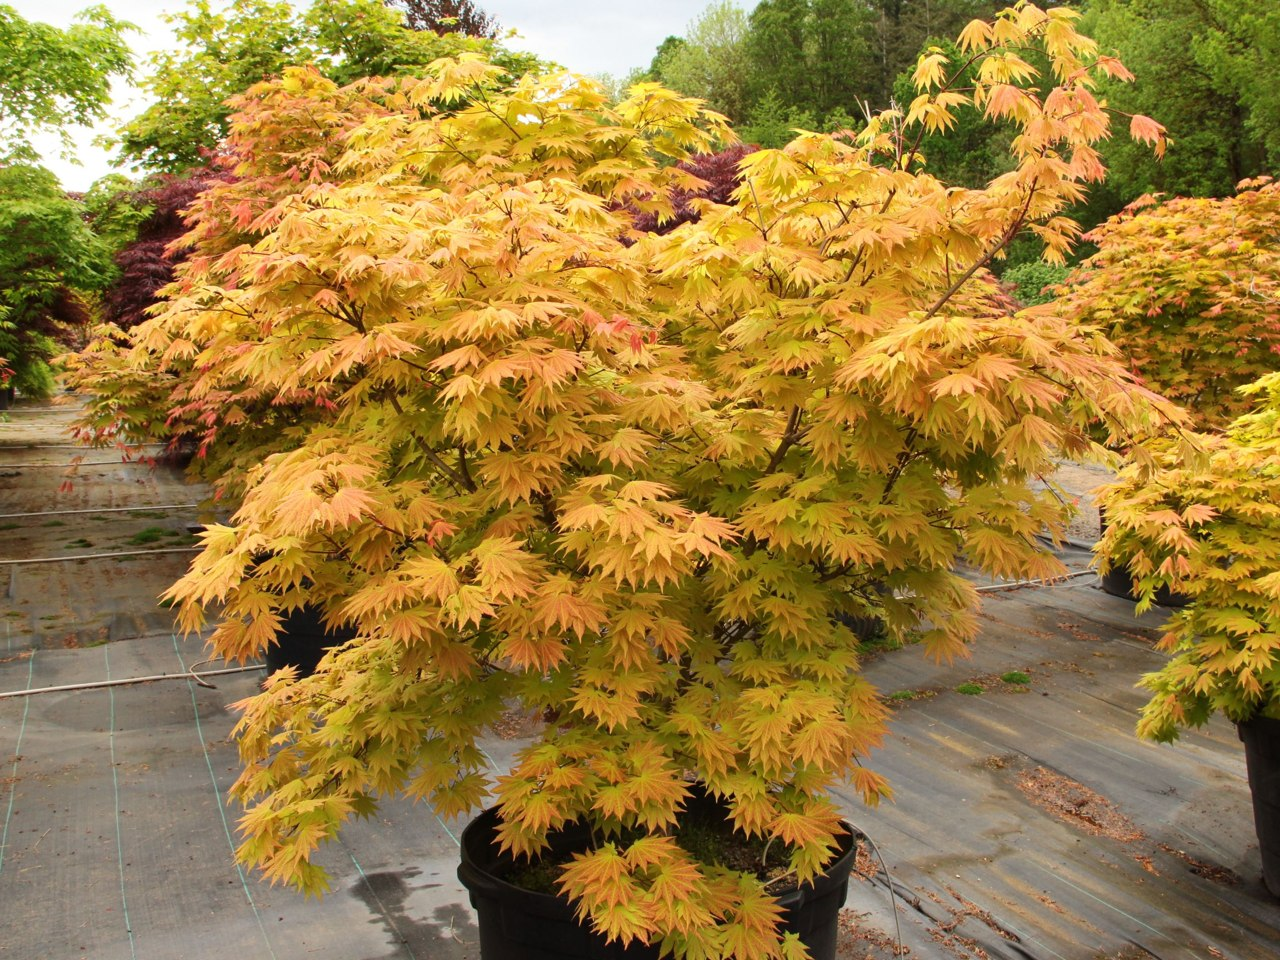 Vigorous, versatile and unbelievably easy to grow, this small, dramatic Full Moon maple boasts orange-red highlights on yellow leaves. The unusual coloring, strongest in full sun, lasts from when leaves emerge in spring until they go rich orange-red in fa